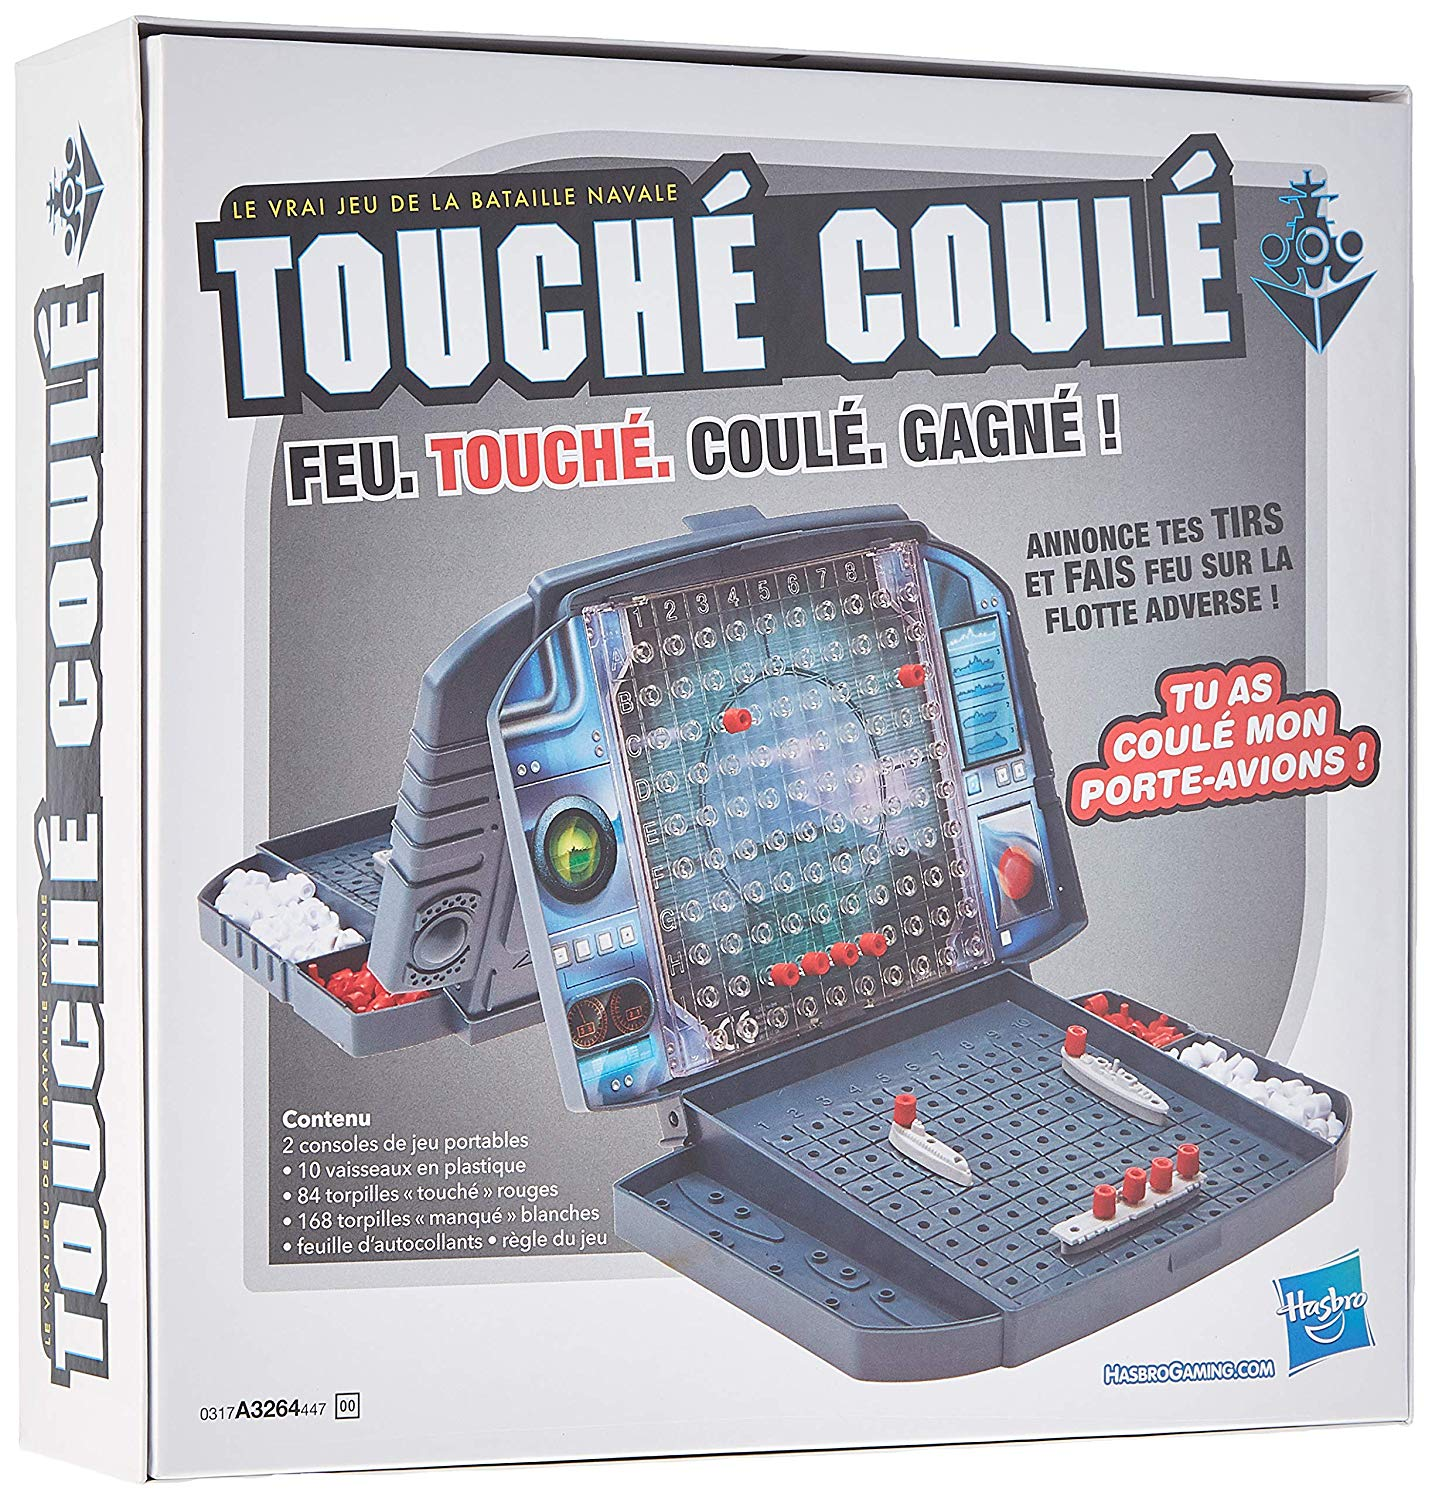 Touchecoule2